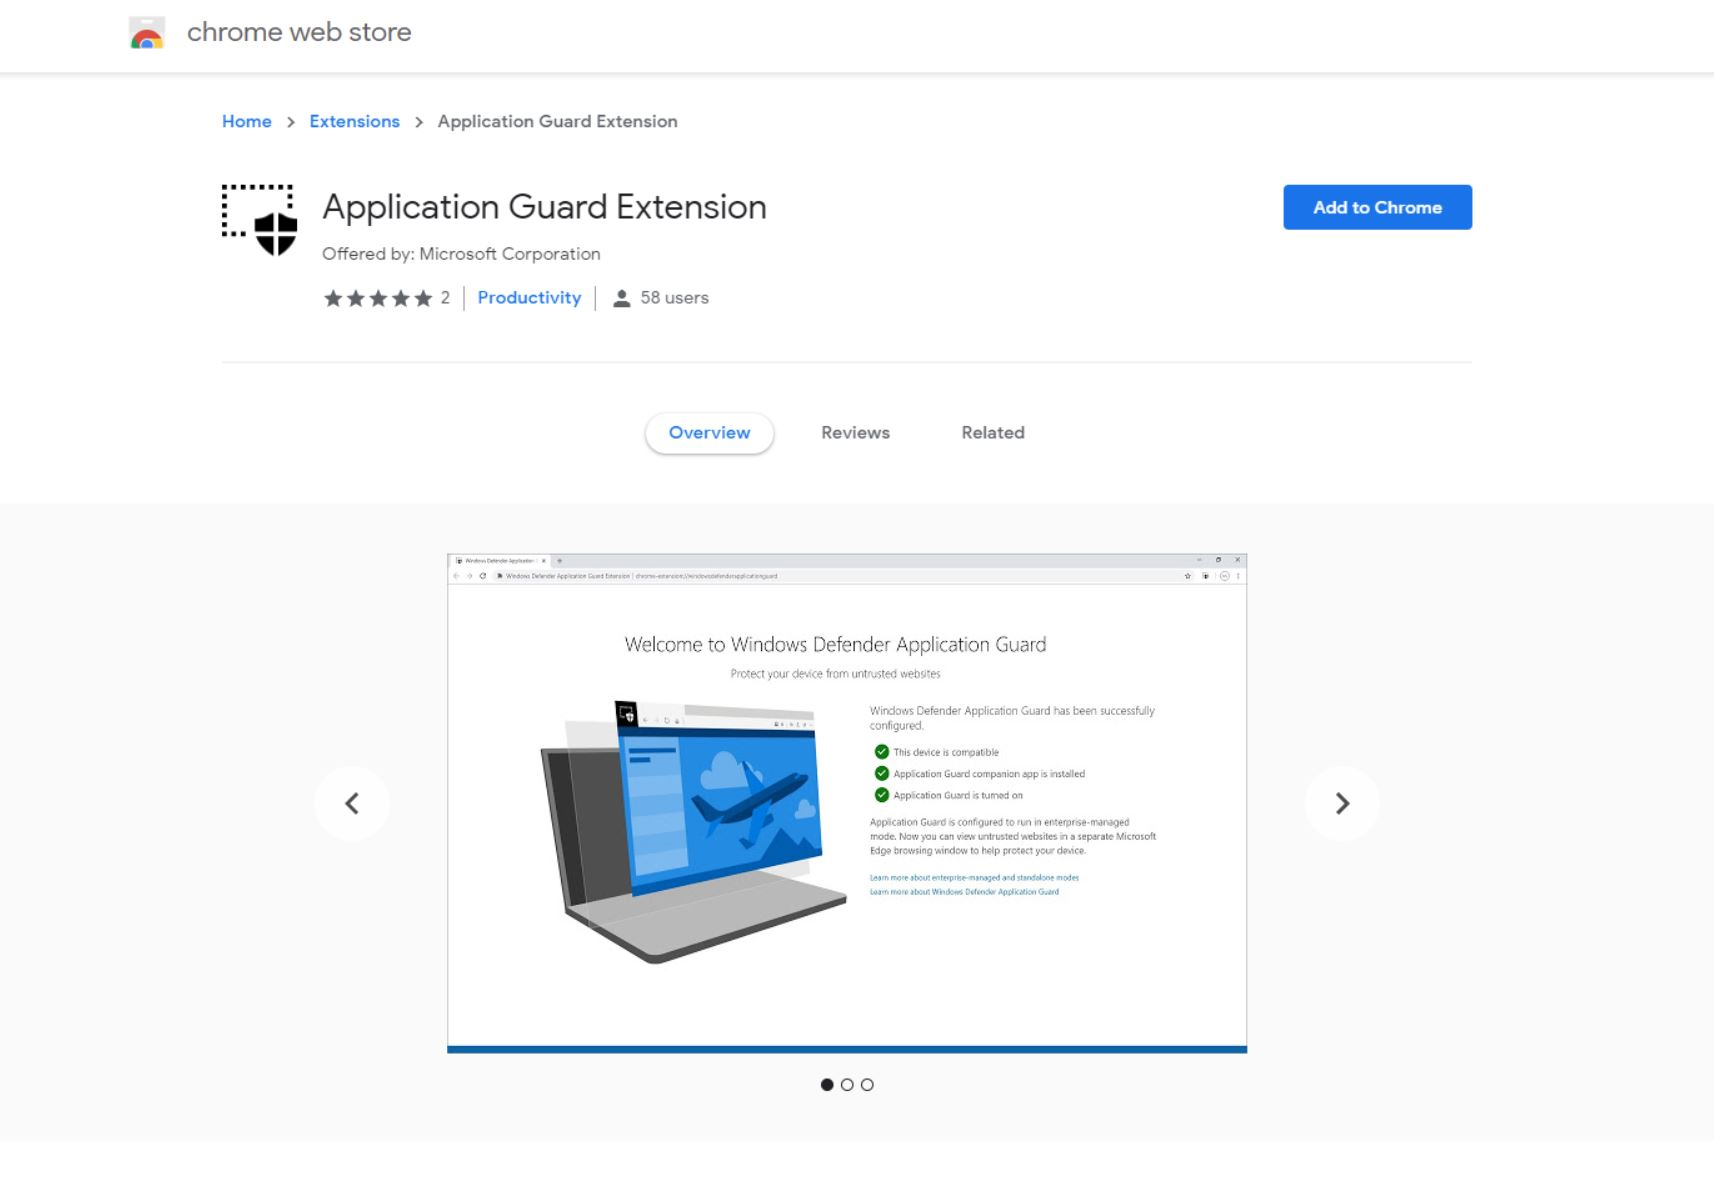 Microsoft releases new security extension for Google Chrome